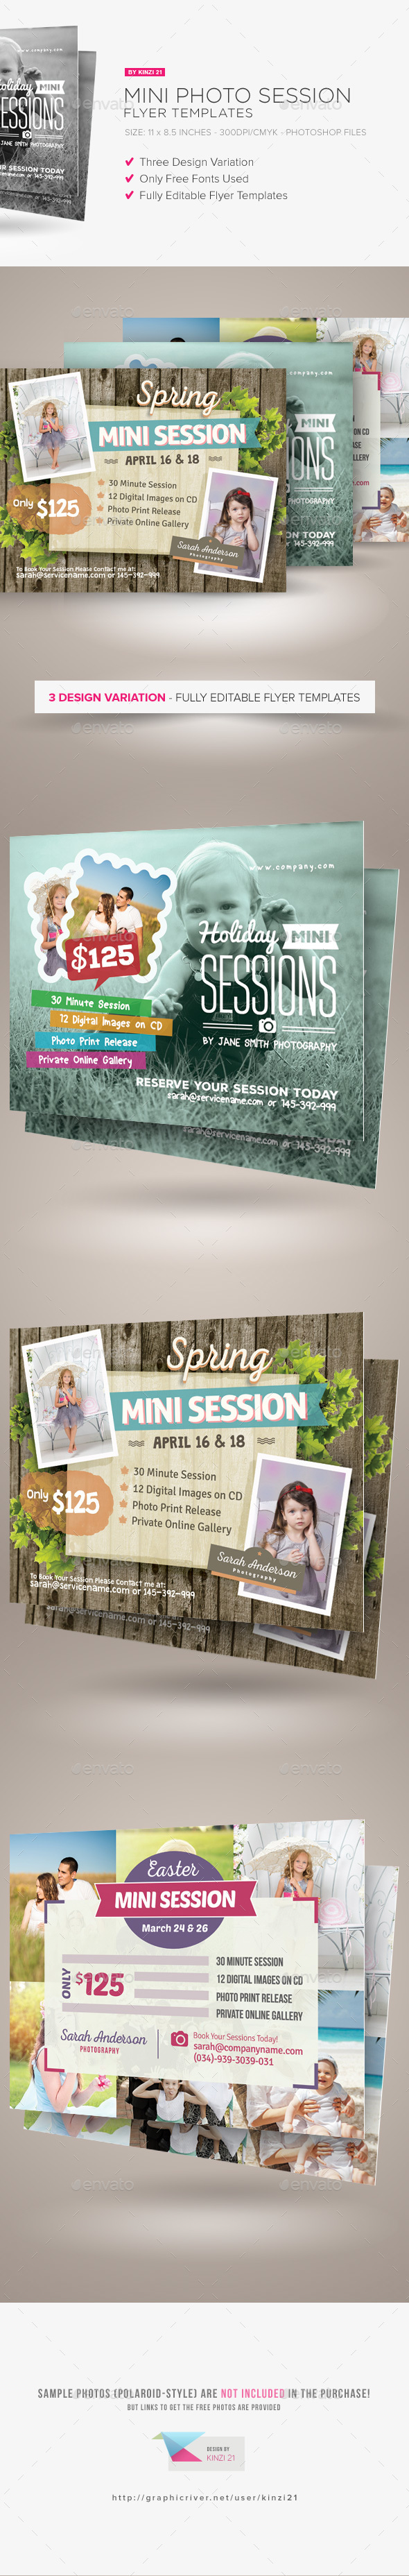 Mini Photo Session Flyer Templates - Corporate Flyers